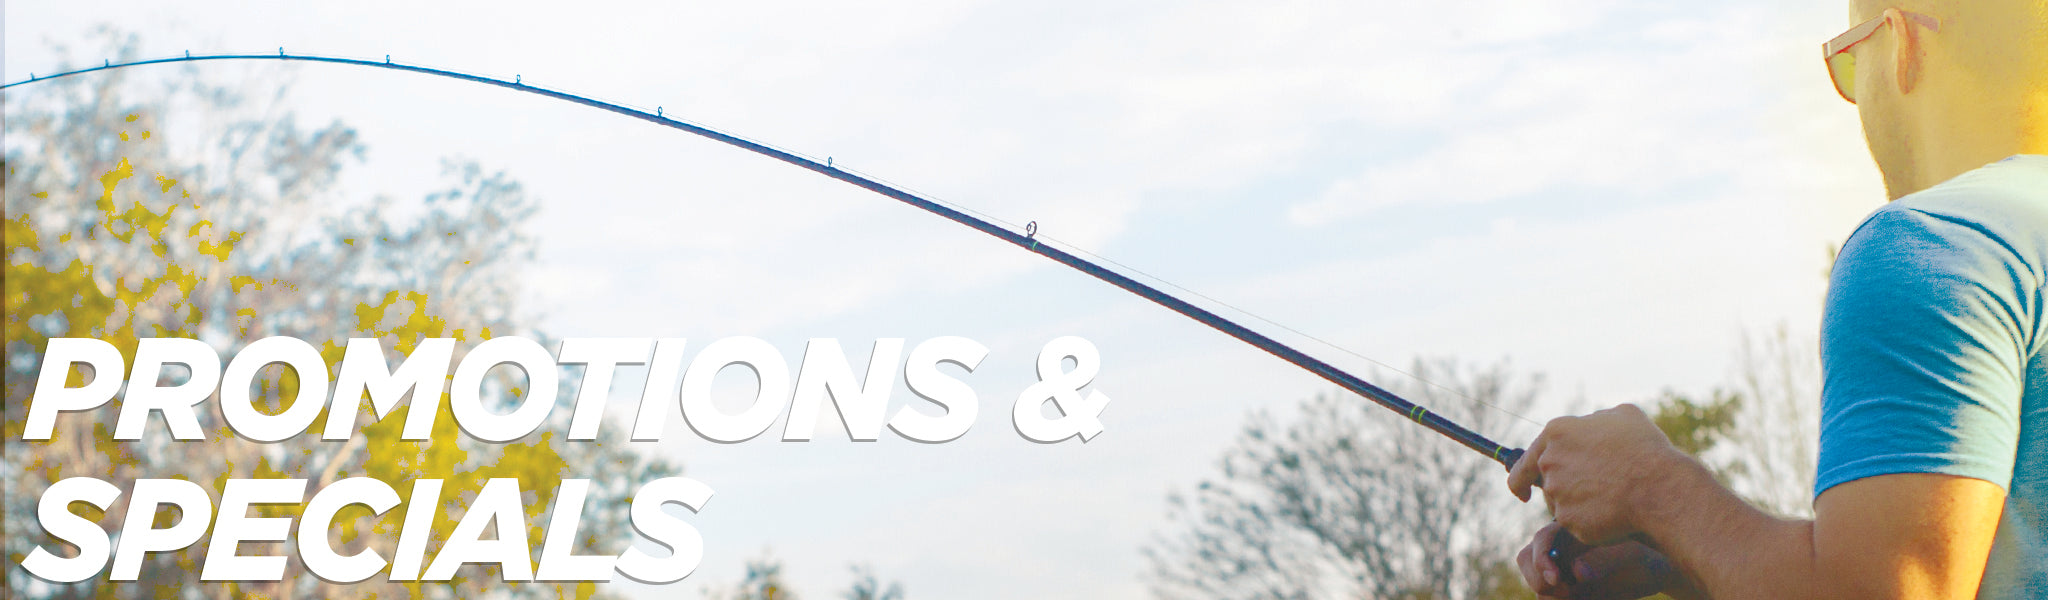 American Tackle Company Angler Products Promotions Specials Deals Oviedo